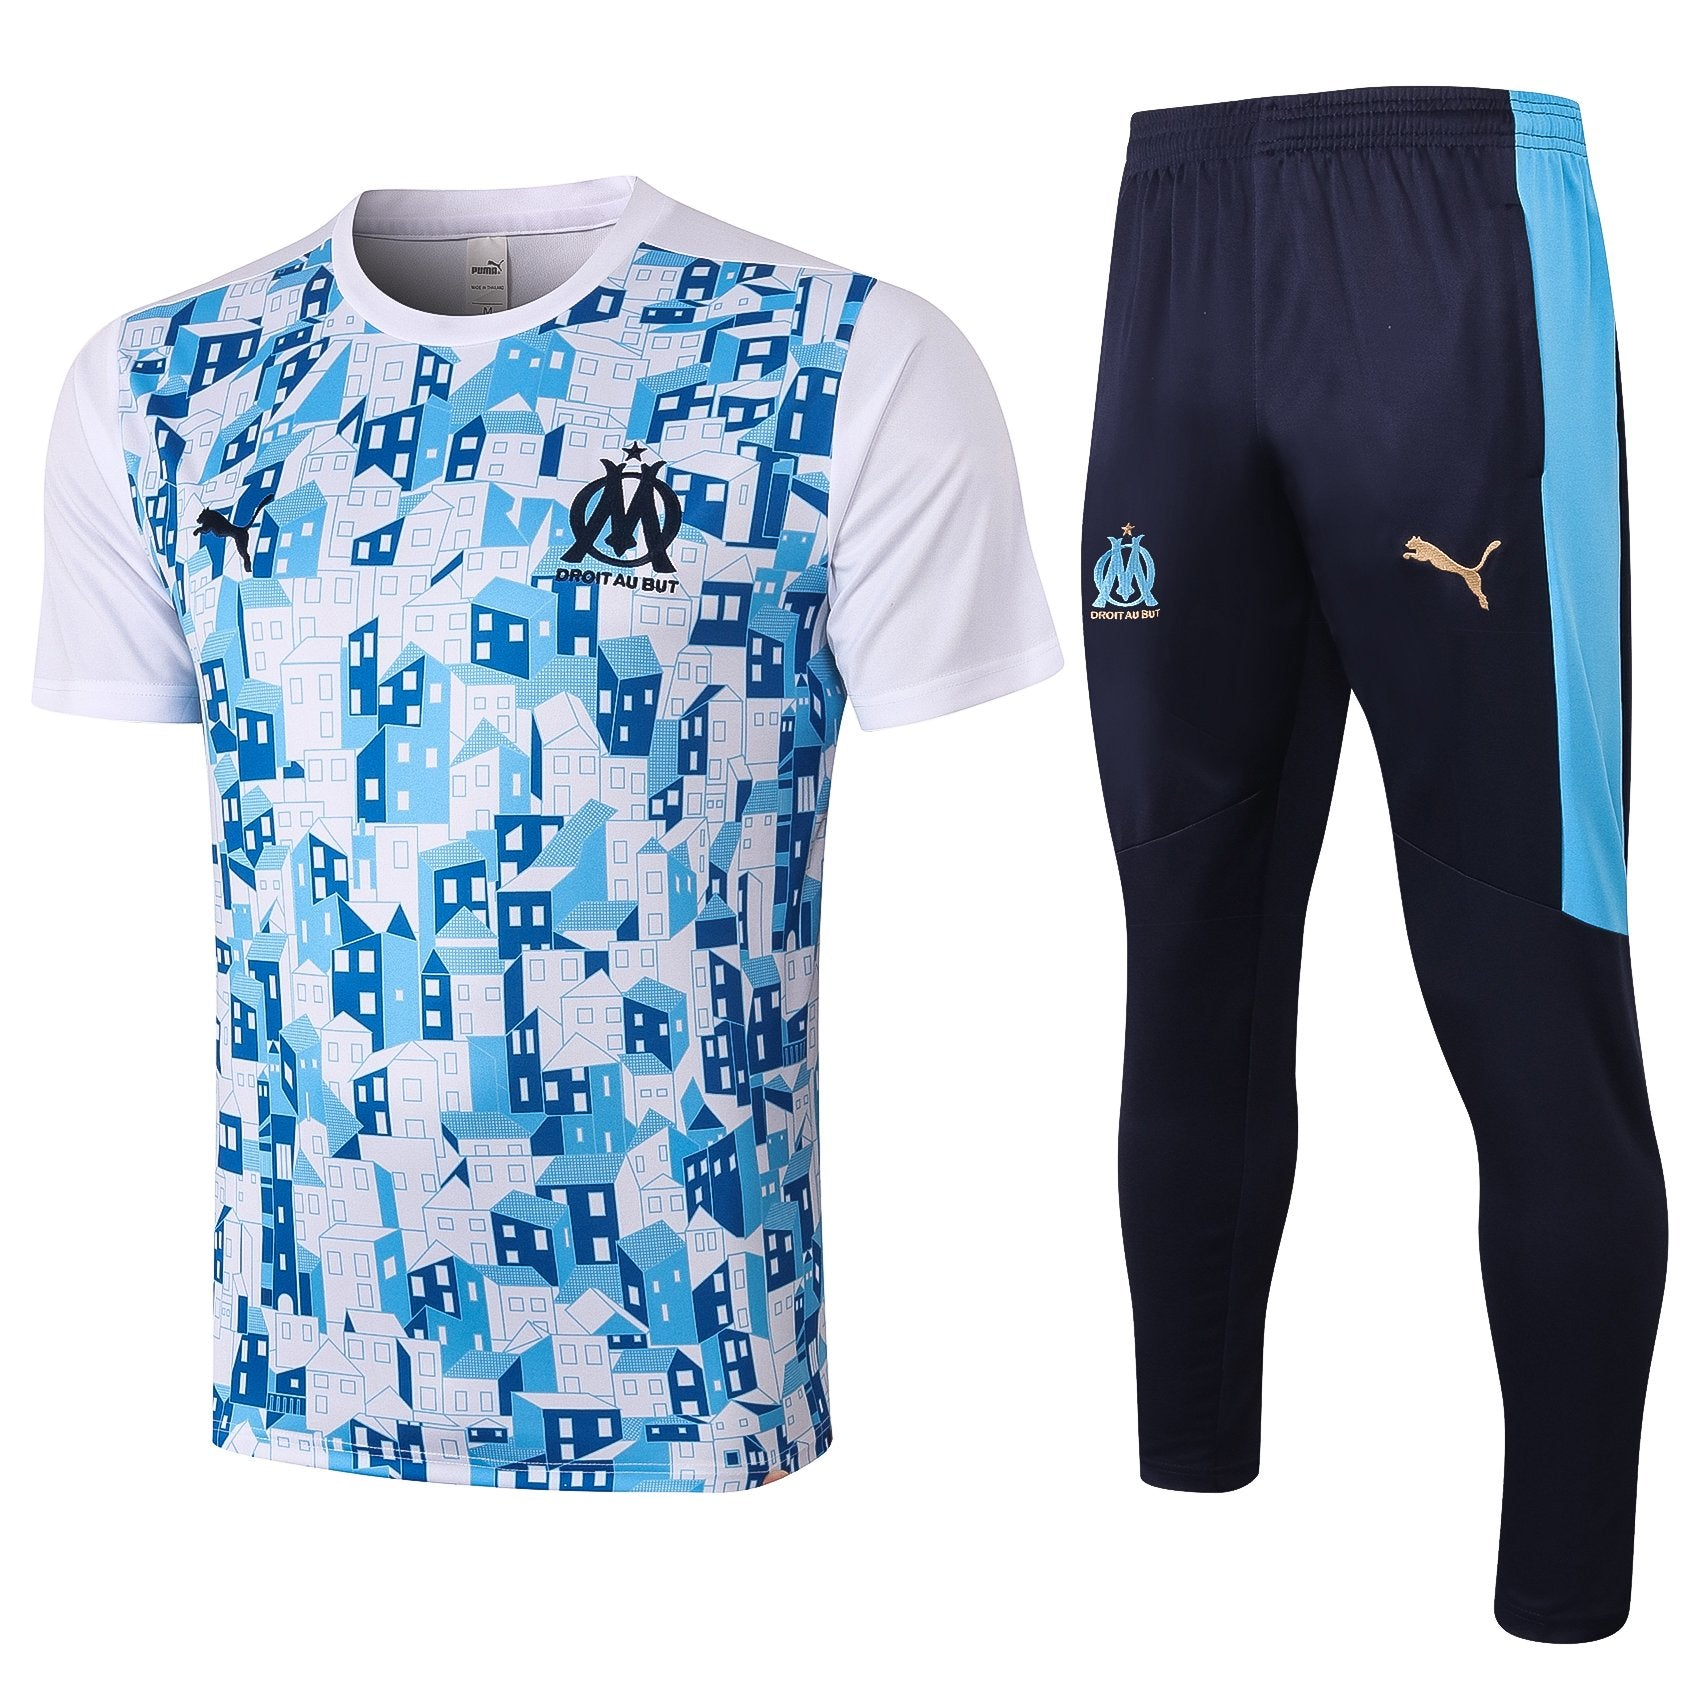 Maillot/Pantalon Entrainement Marseille OM Foot 2021 Homme freeshipping - Foot Online